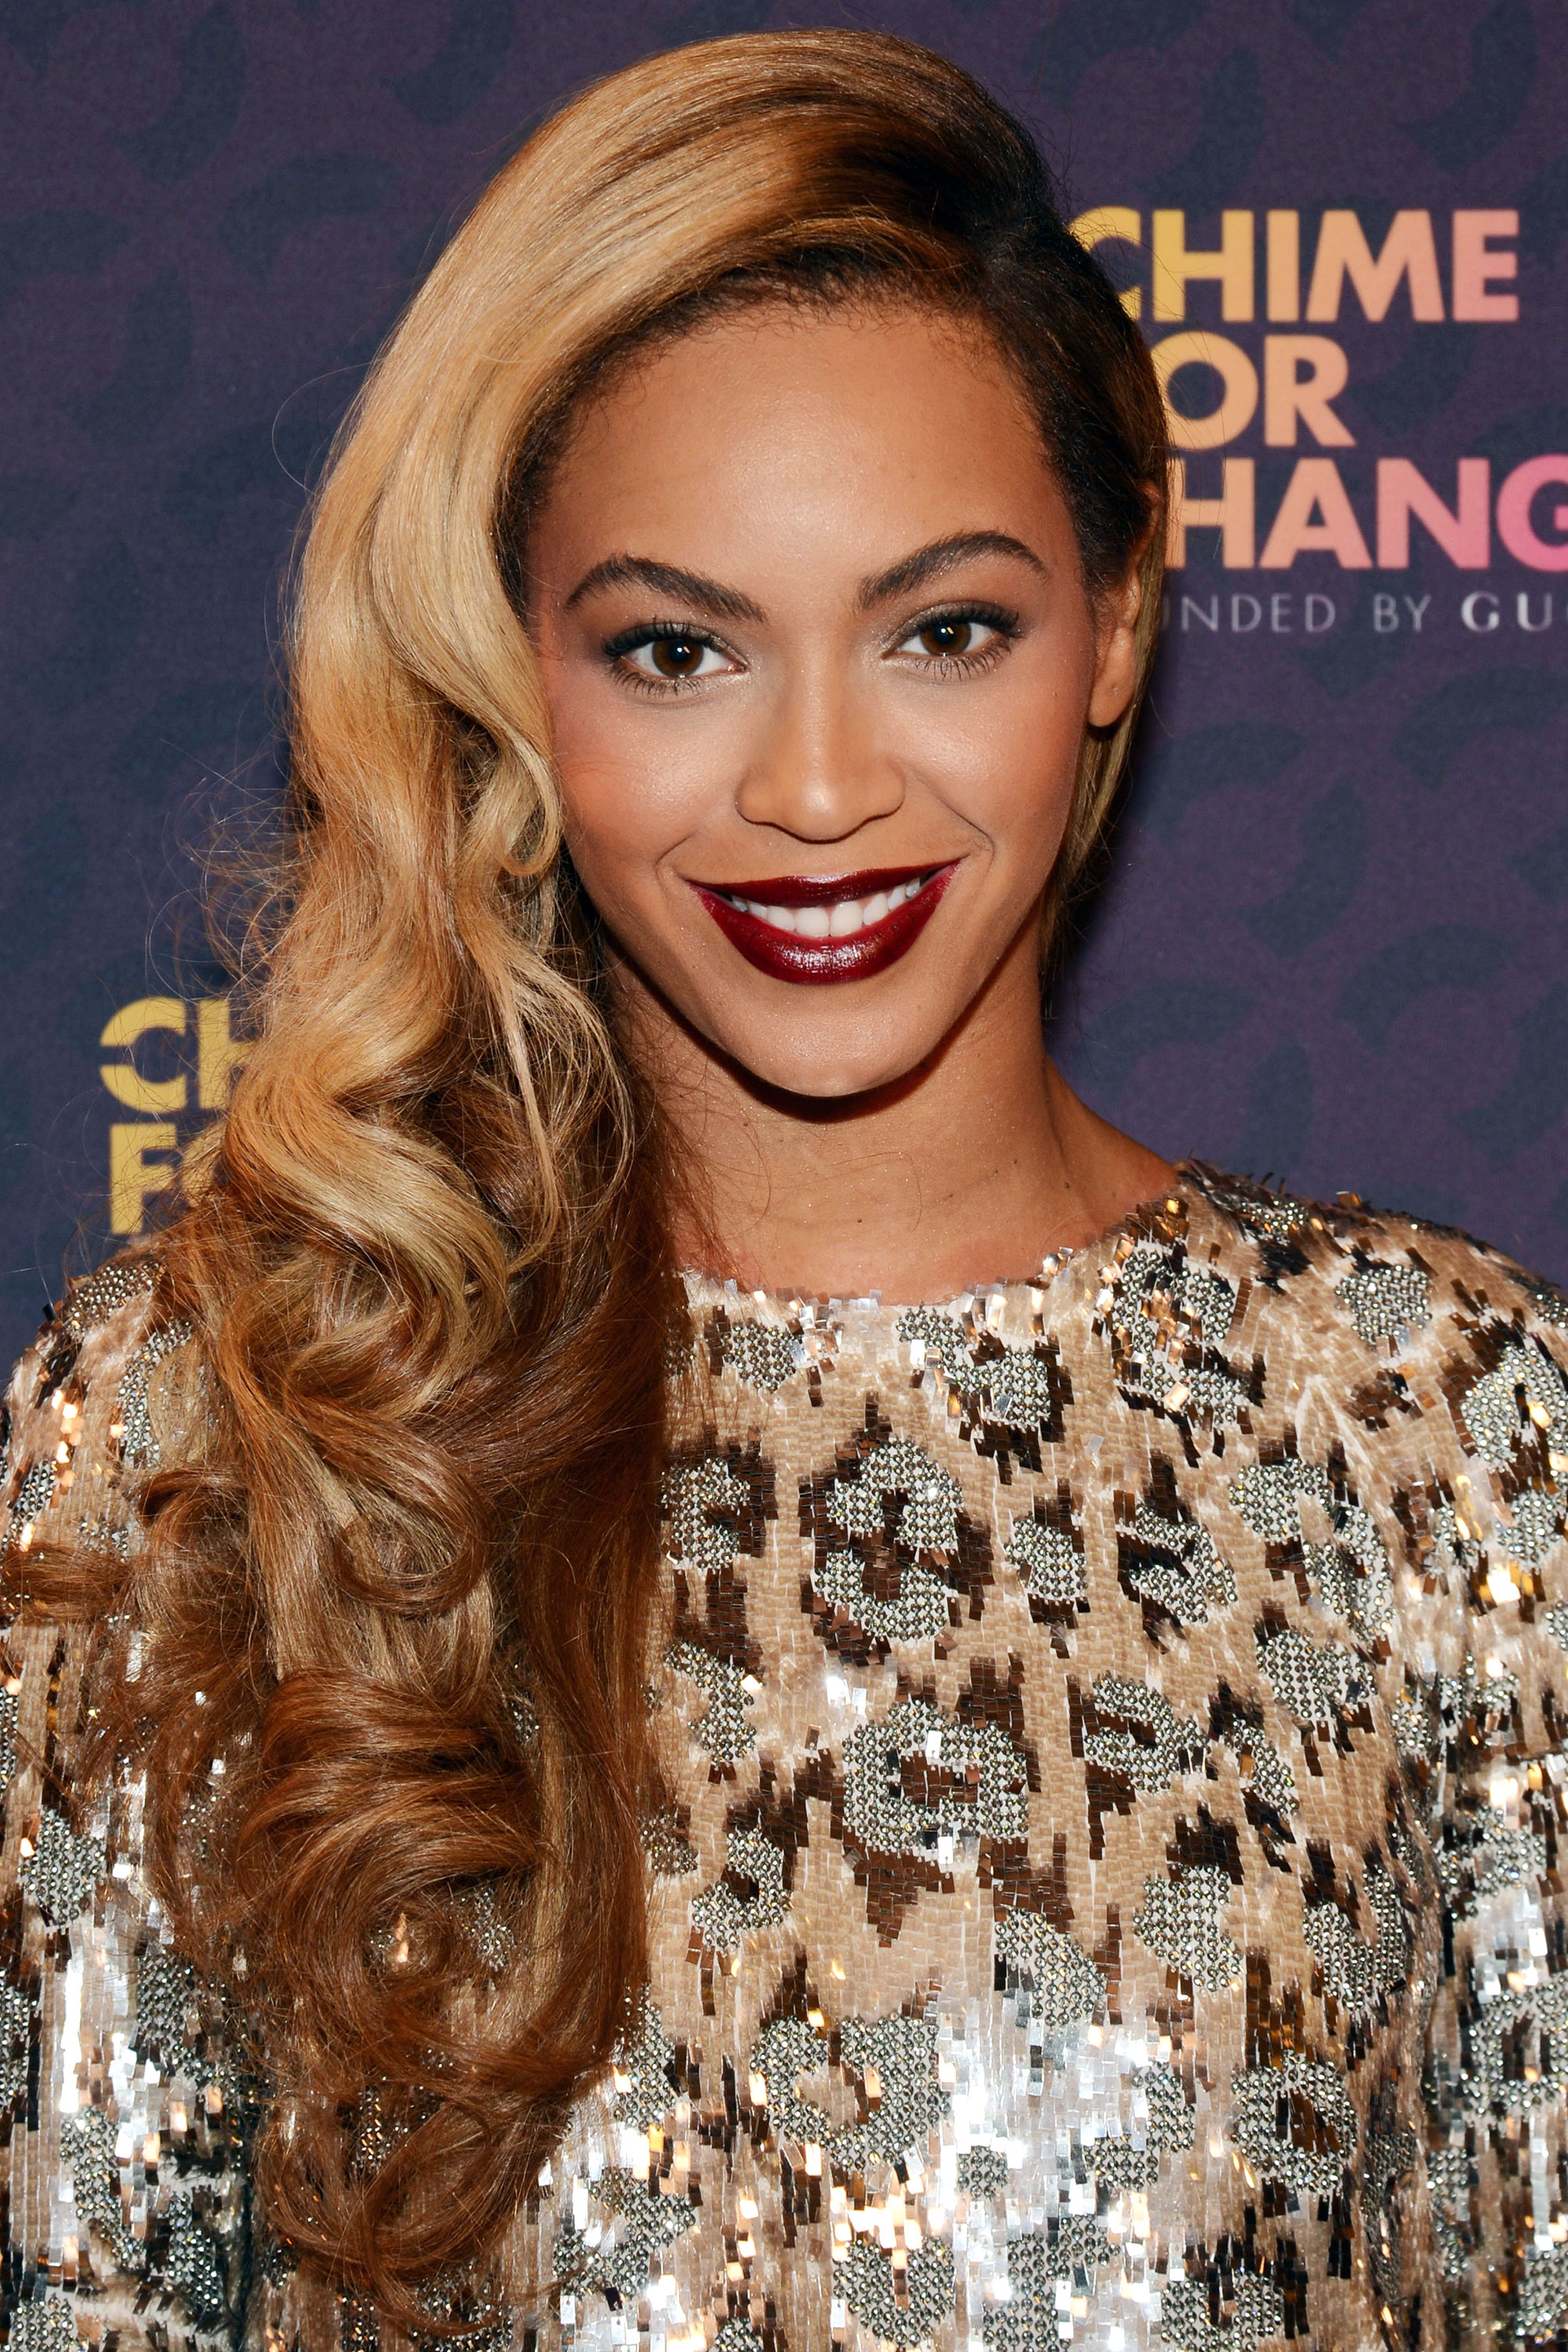 Enjoyable 40 Beyonce Hairstyles Beyonce39S Real Hair Long Hair And Short Hairstyles For Women Draintrainus